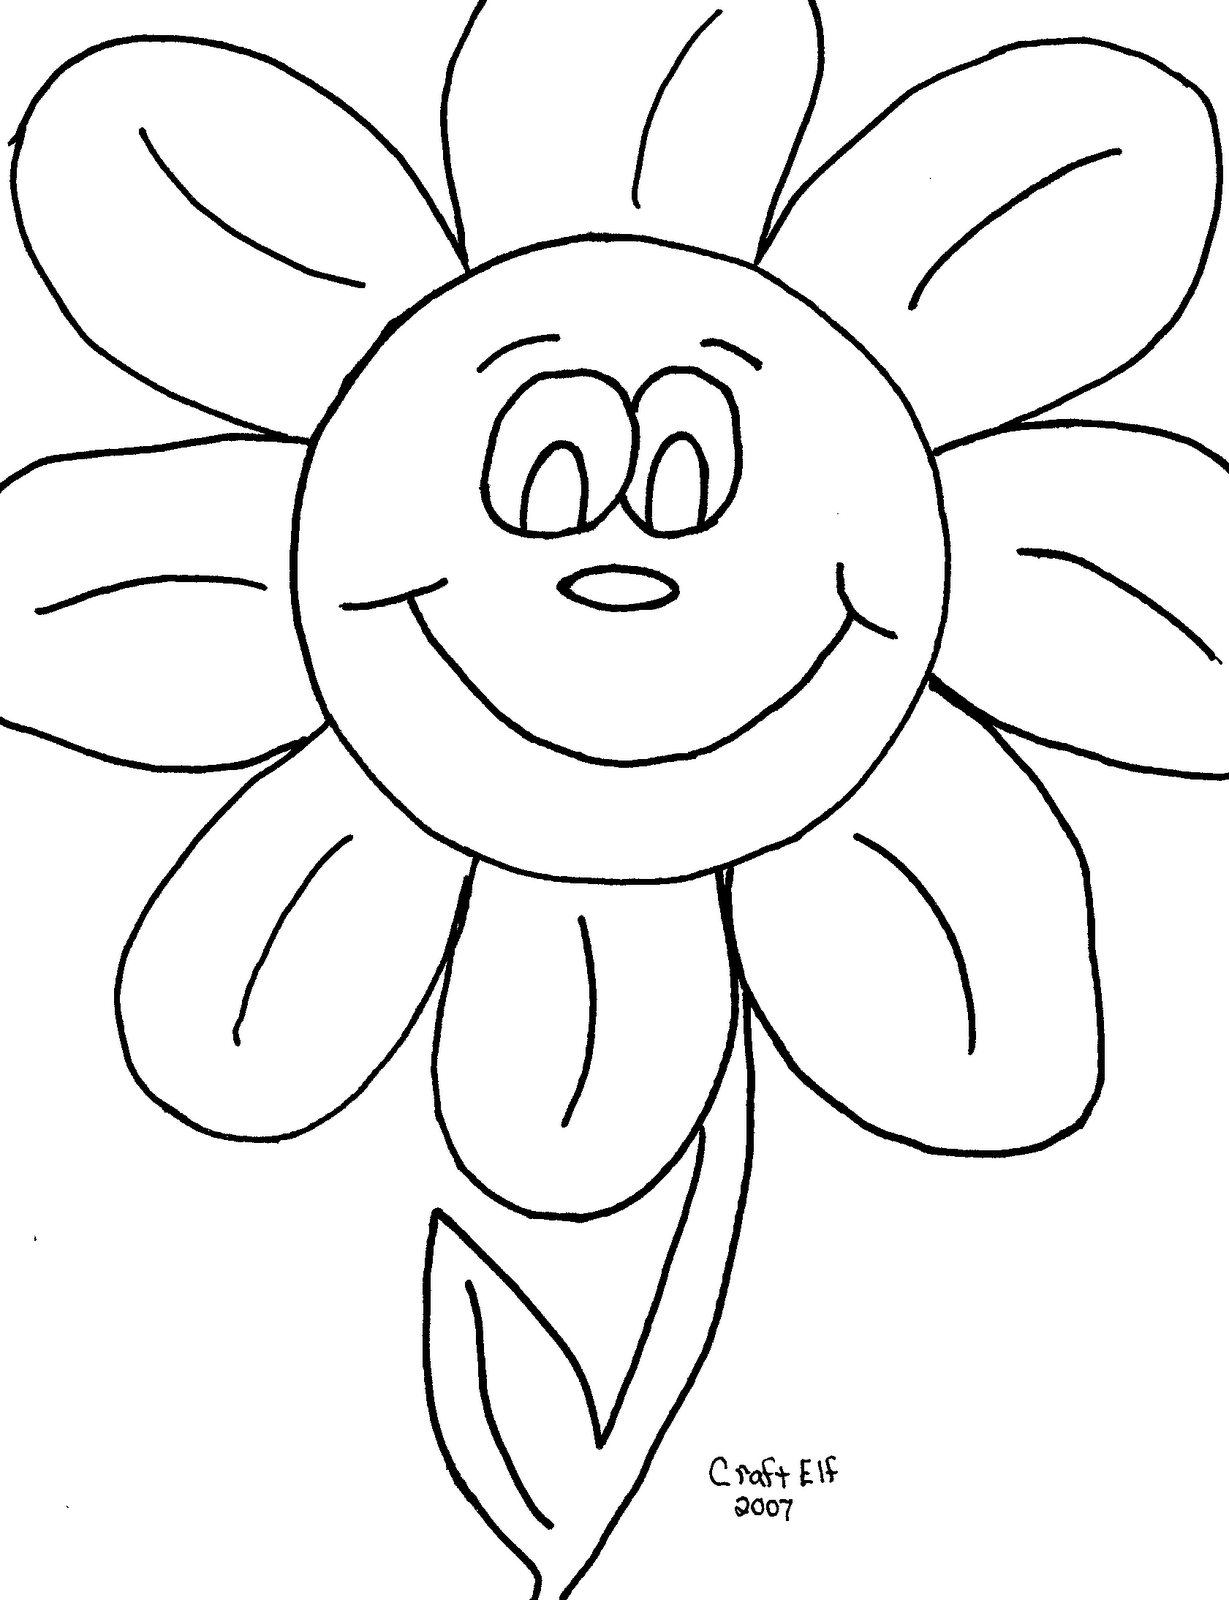 Coloring Pages For Pre Kindergarten : Coloring pages for pre kindergarten home